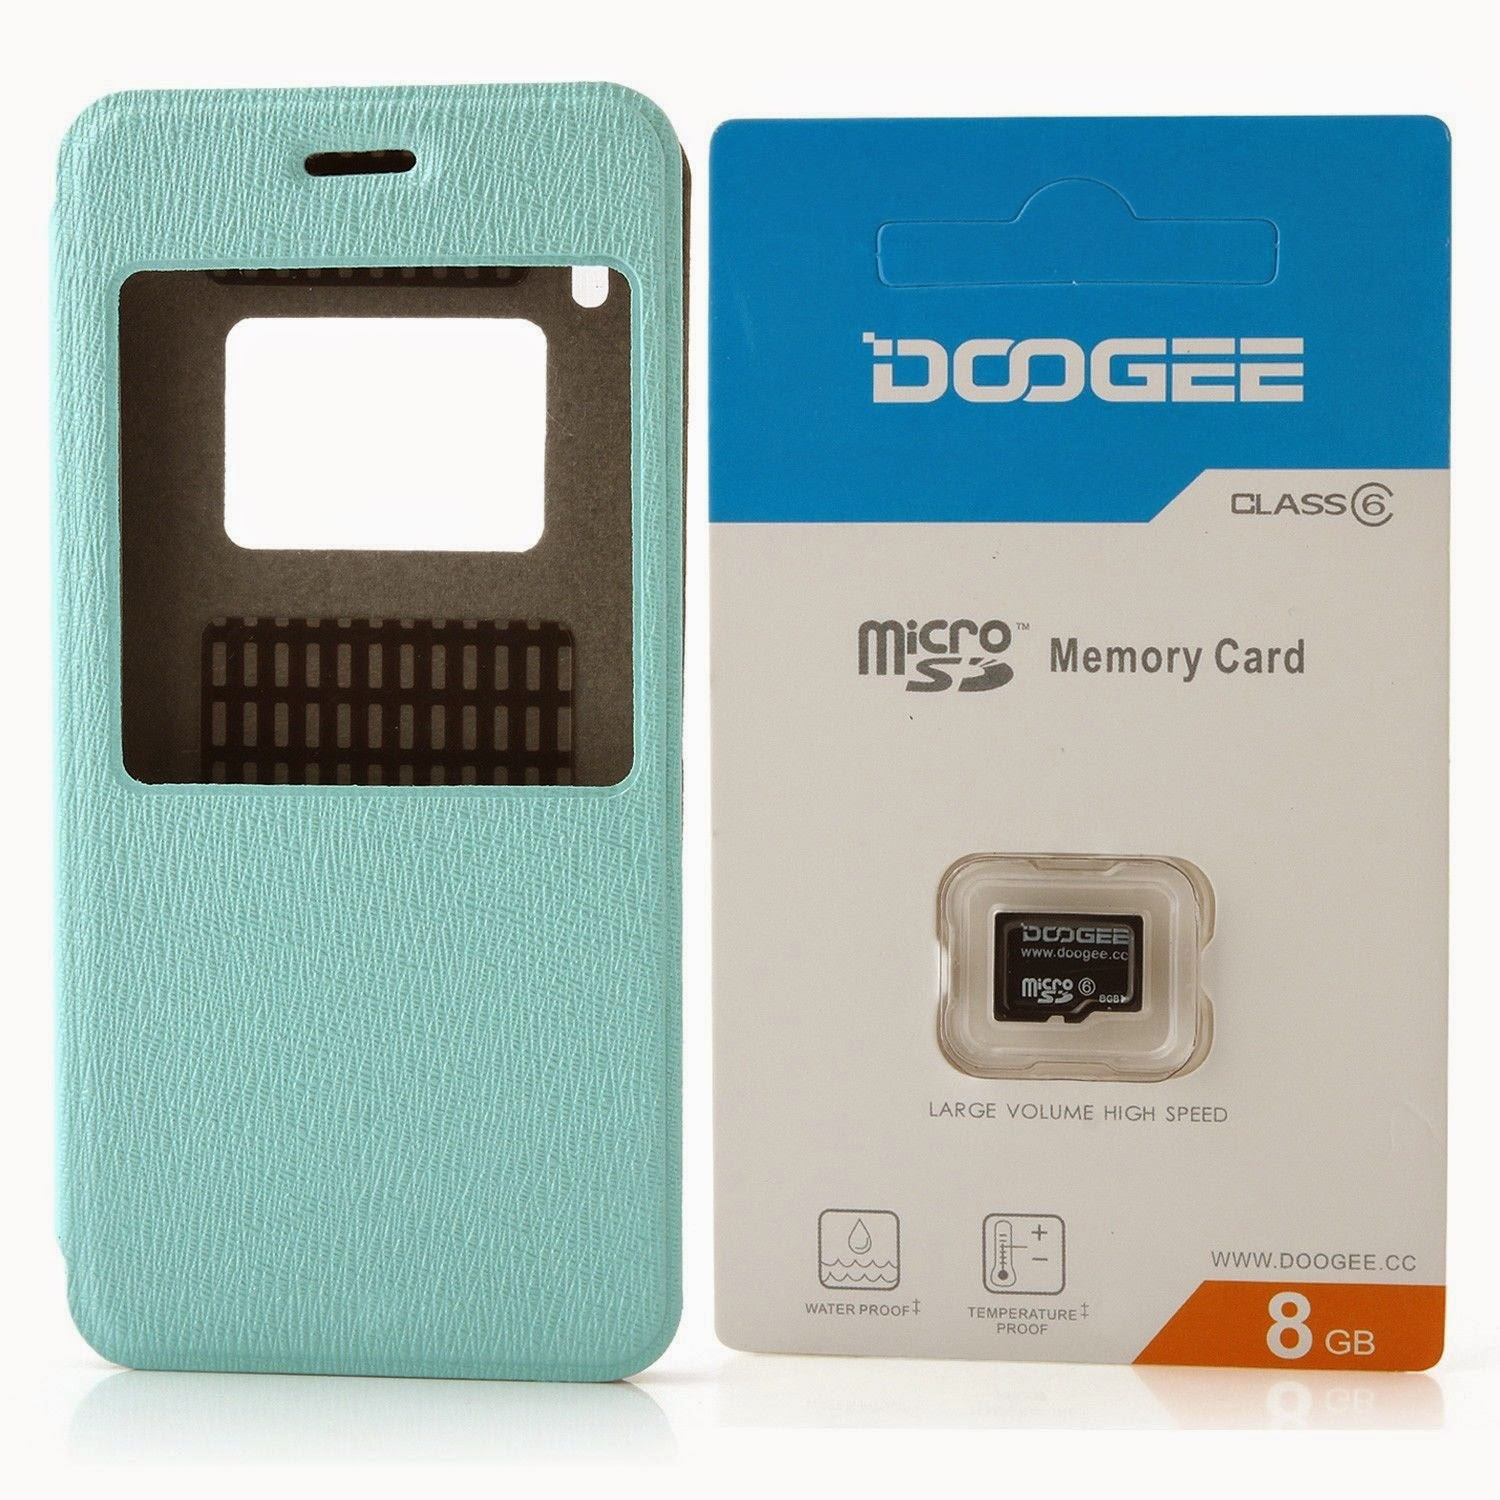 8GB TF Card Memory Card + Protective Flip Cover Case for DOOGEE DG800 Smartphone